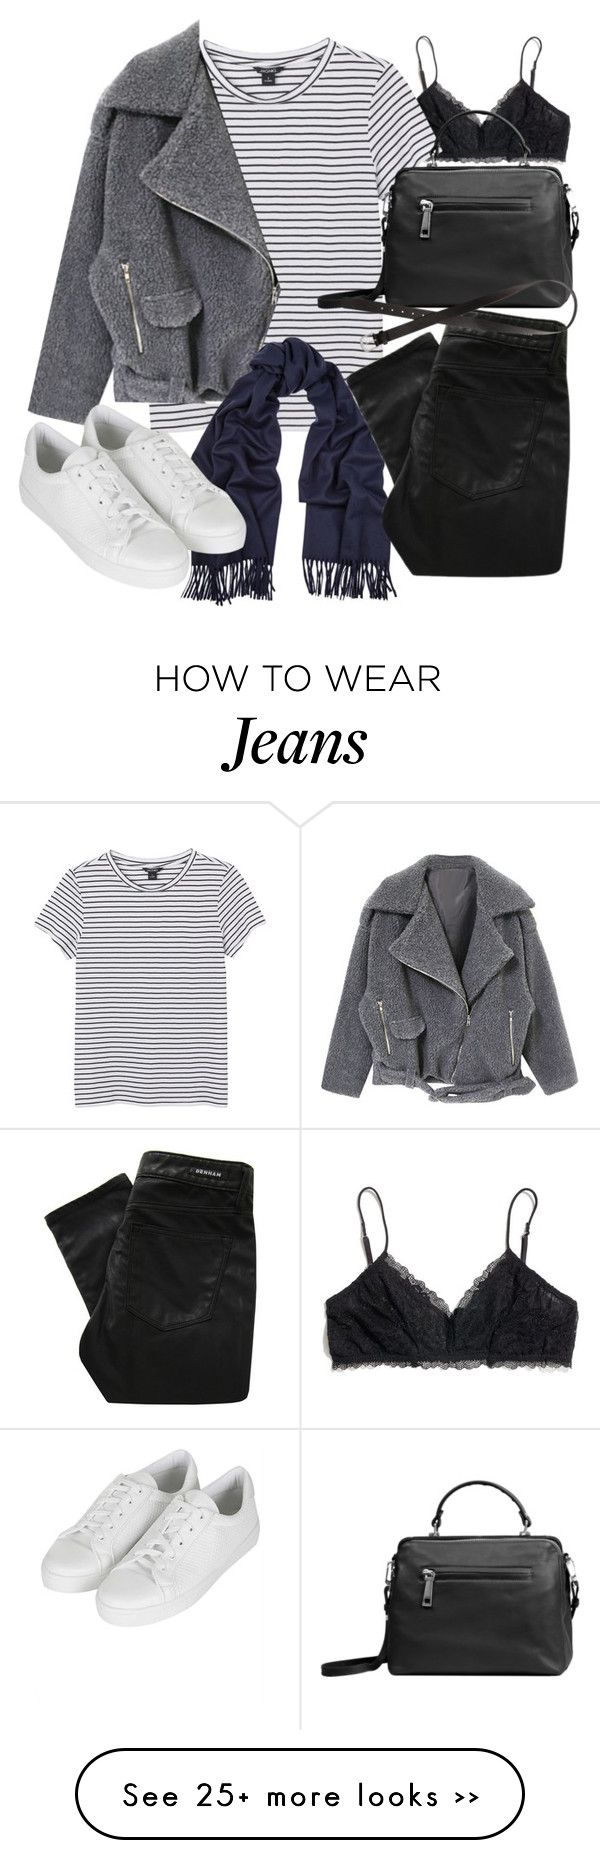 """""""Untitled #18928"""" by florencia95 on Polyvore featuring Madewell, Monki, Linea Pelle, Acne Studios, Denham, H&M and Topshop"""